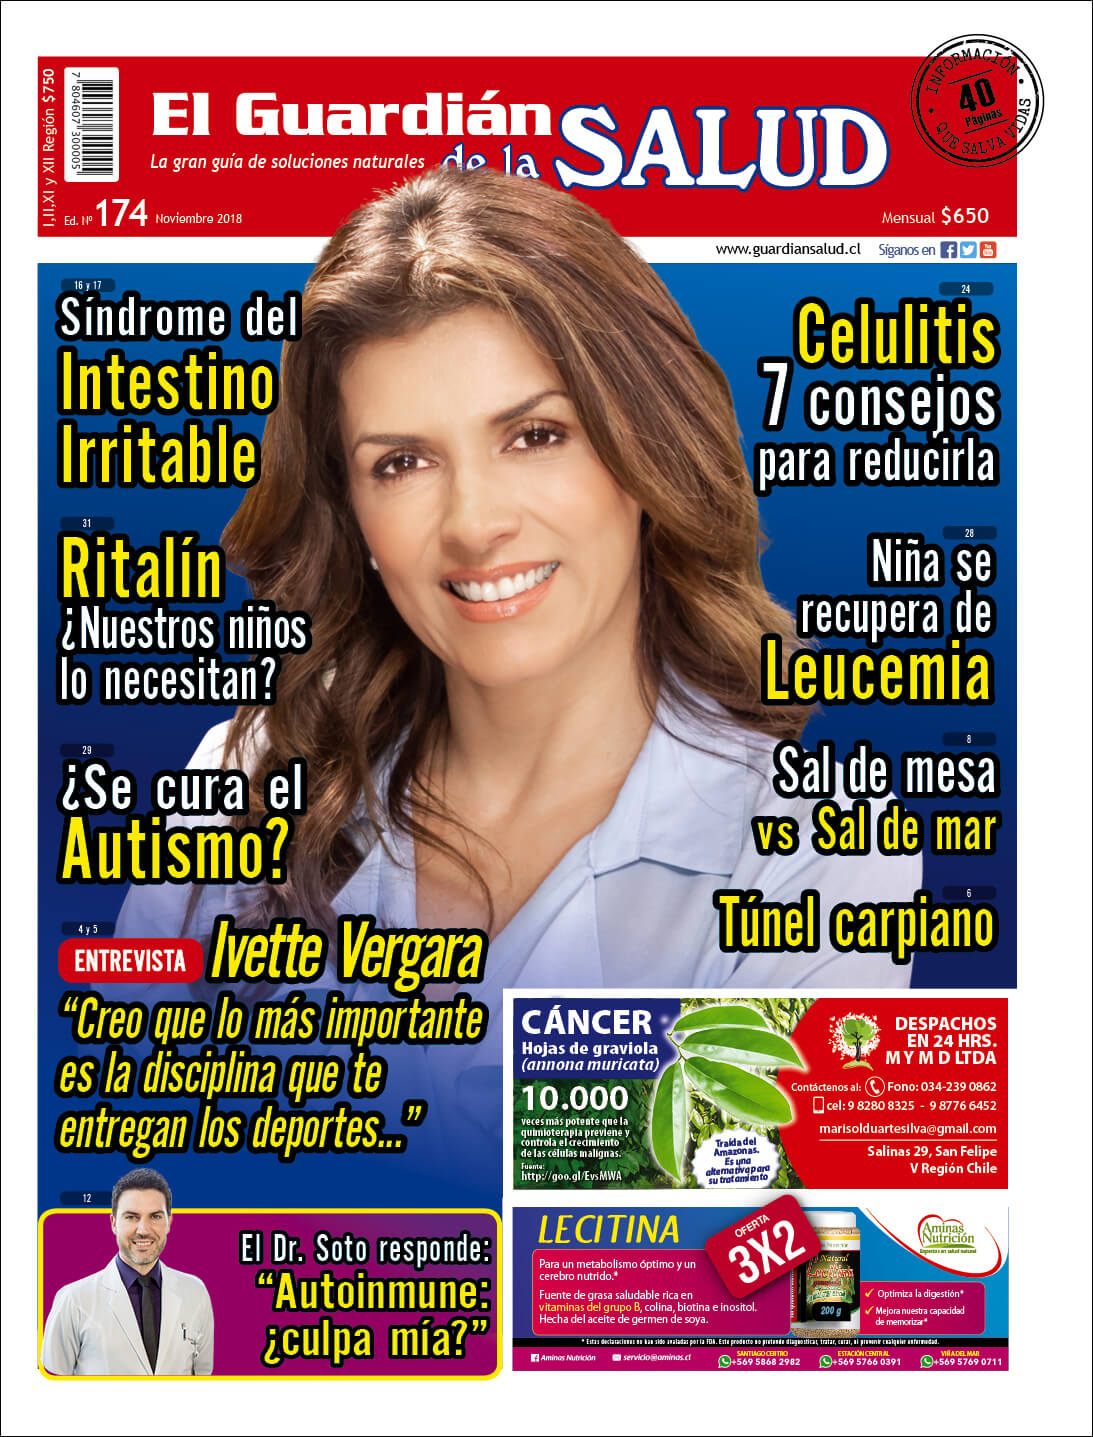 Edición 174 Síndrome del Intestino Irritable – El Guardián de la Salud Digital